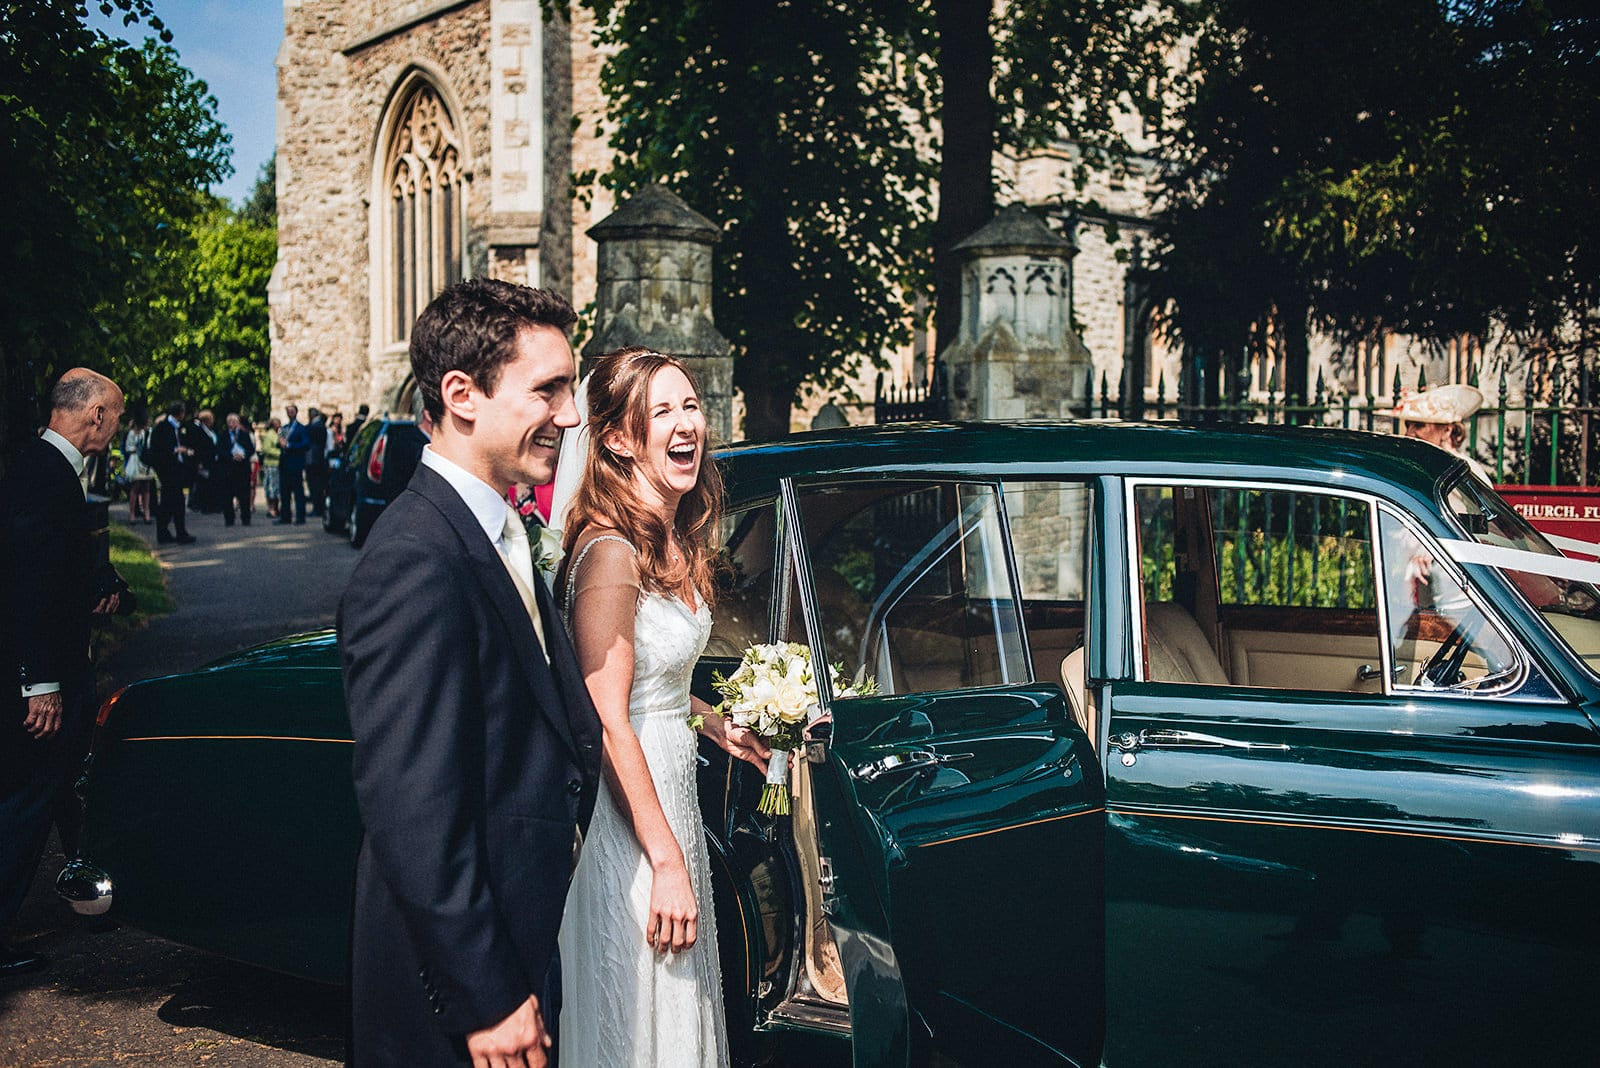 Bride and groom laugh as they get in their vintage wedding car at All Saint's Church, Fulham